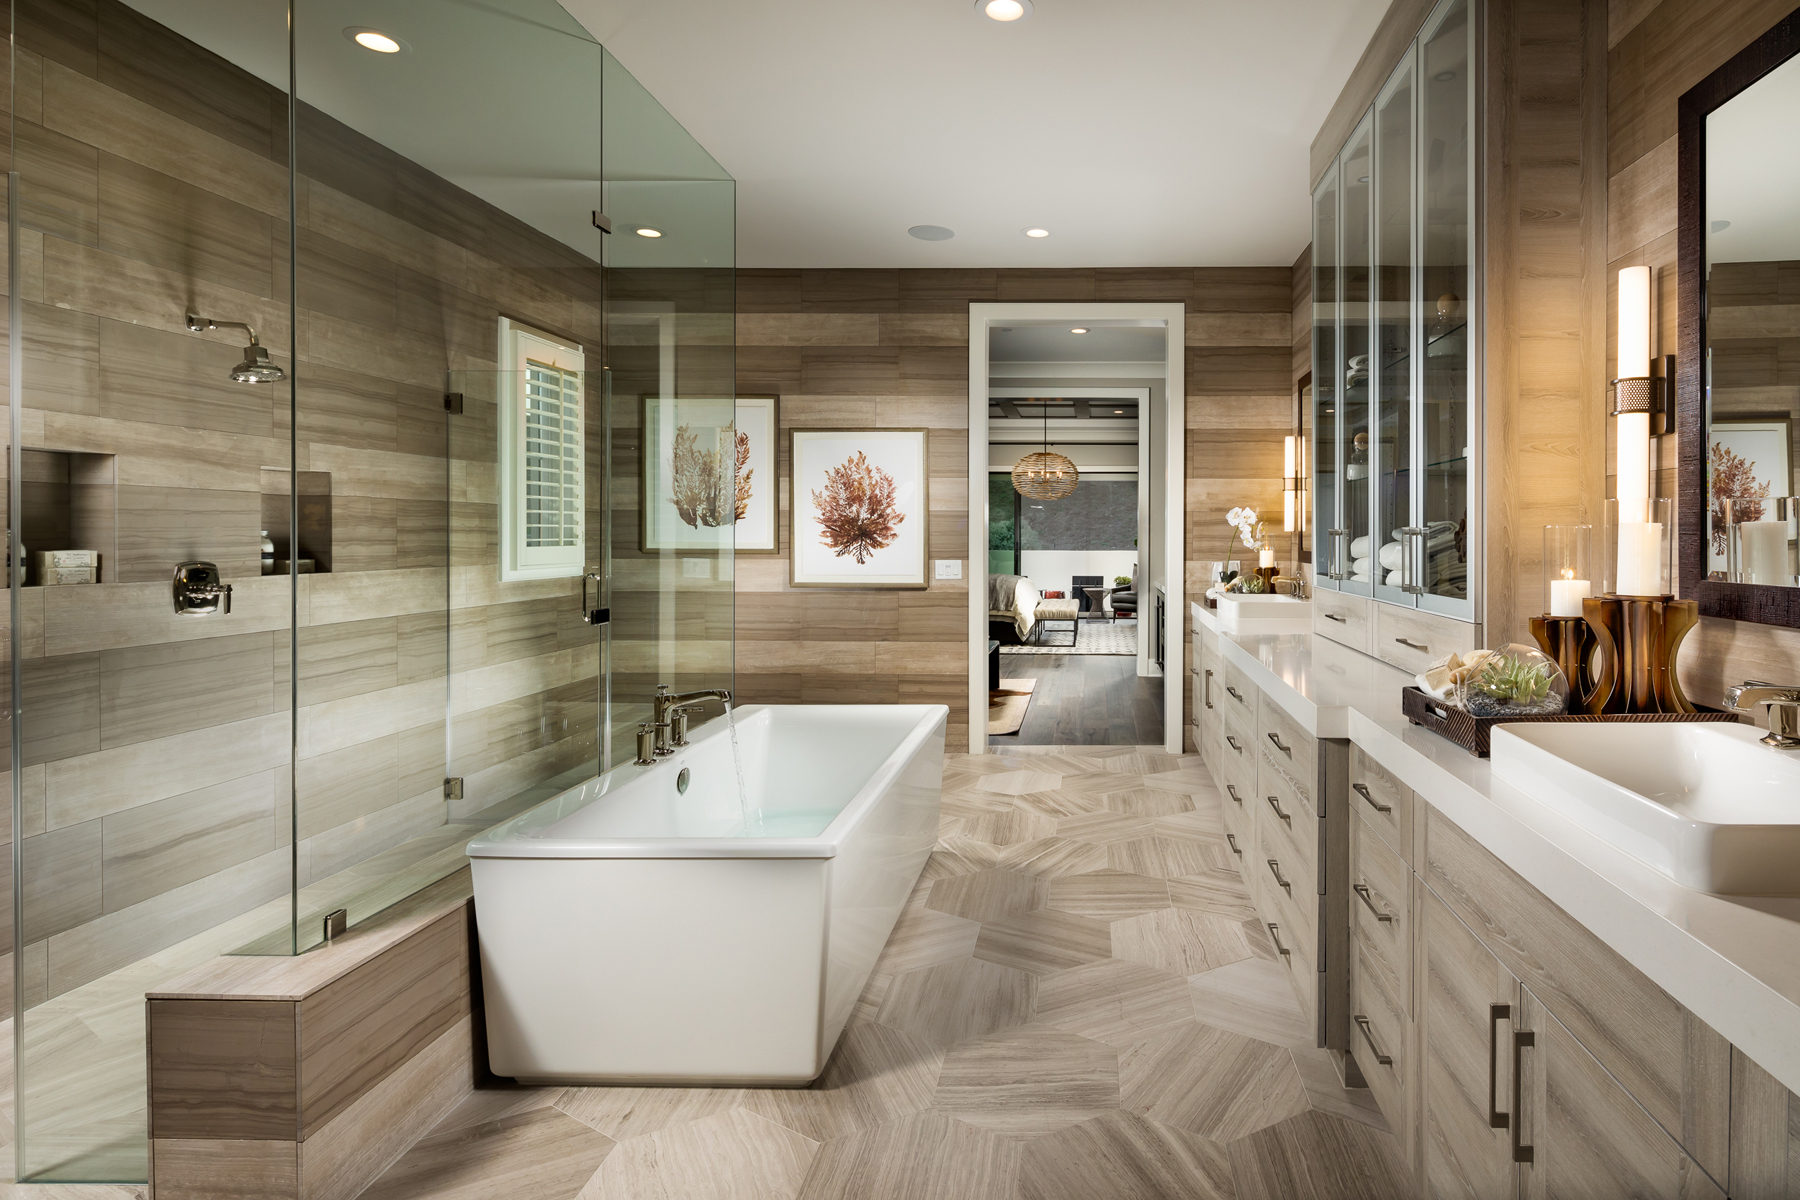 Modern bathroom with contrasting tiles on the floor and walls.